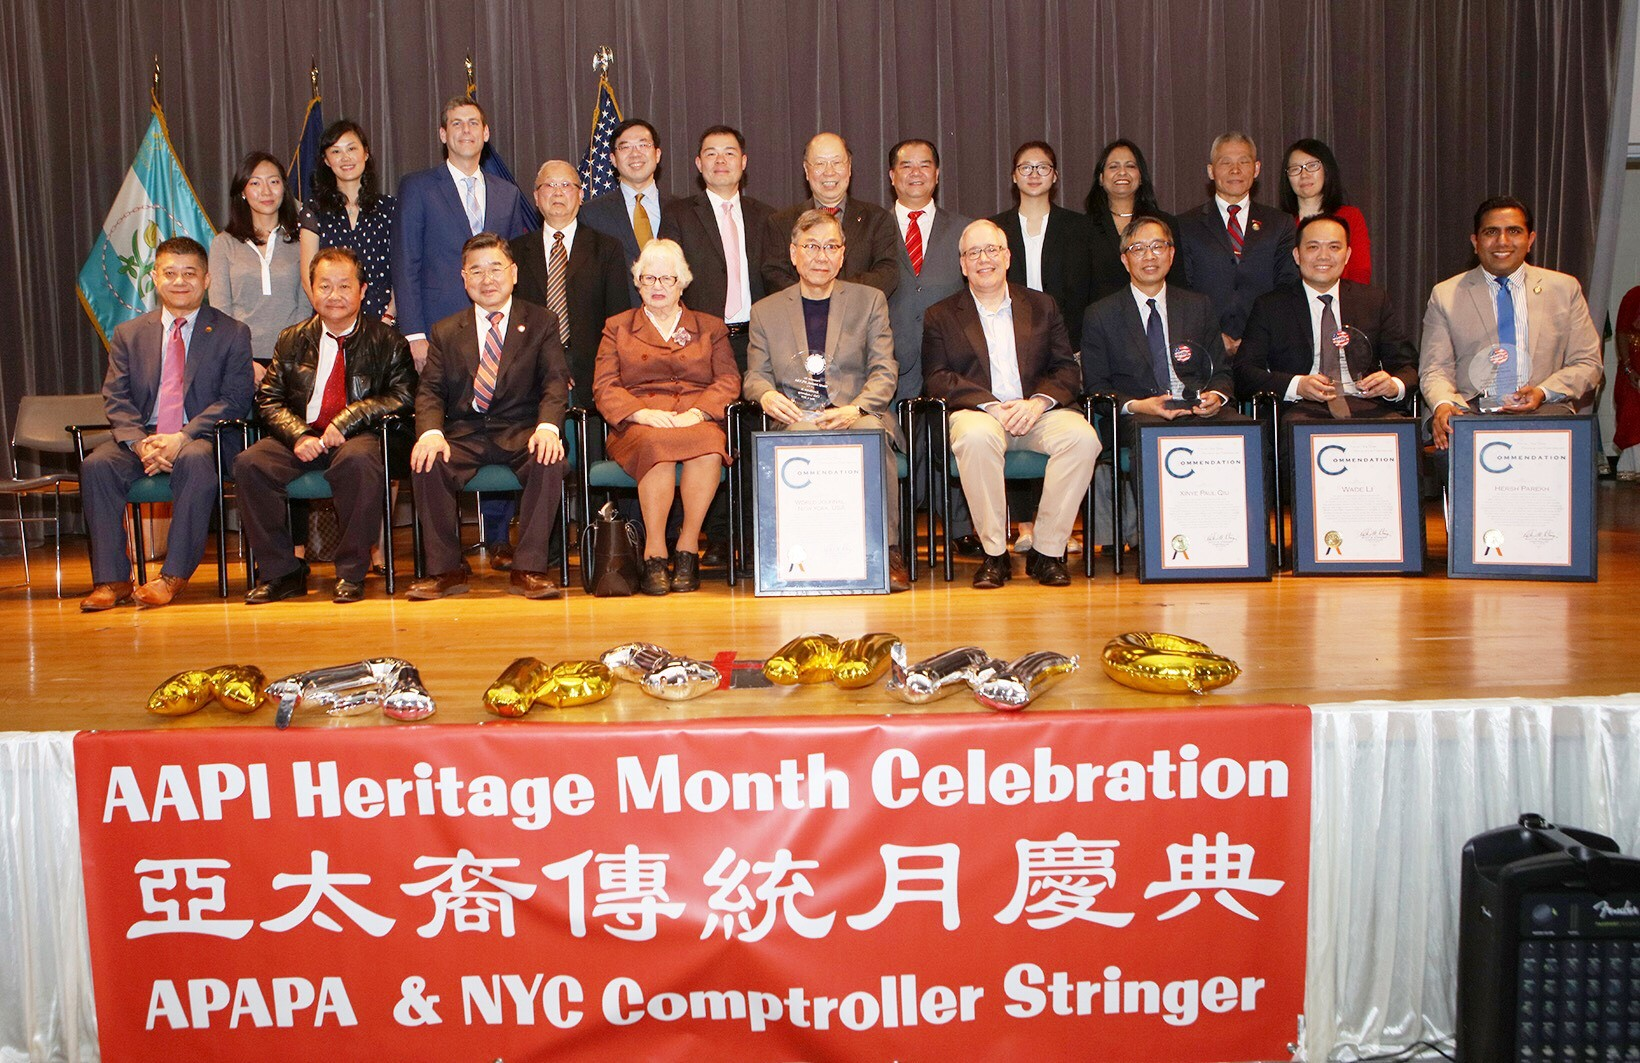 On May 4, 2019, Assemblyman Braunstein attended the APAPA New York Asian Americans and Pacific Islanders (AAPI) Heritage Month Celebration, which recognized the 150th anniversary of the completion of